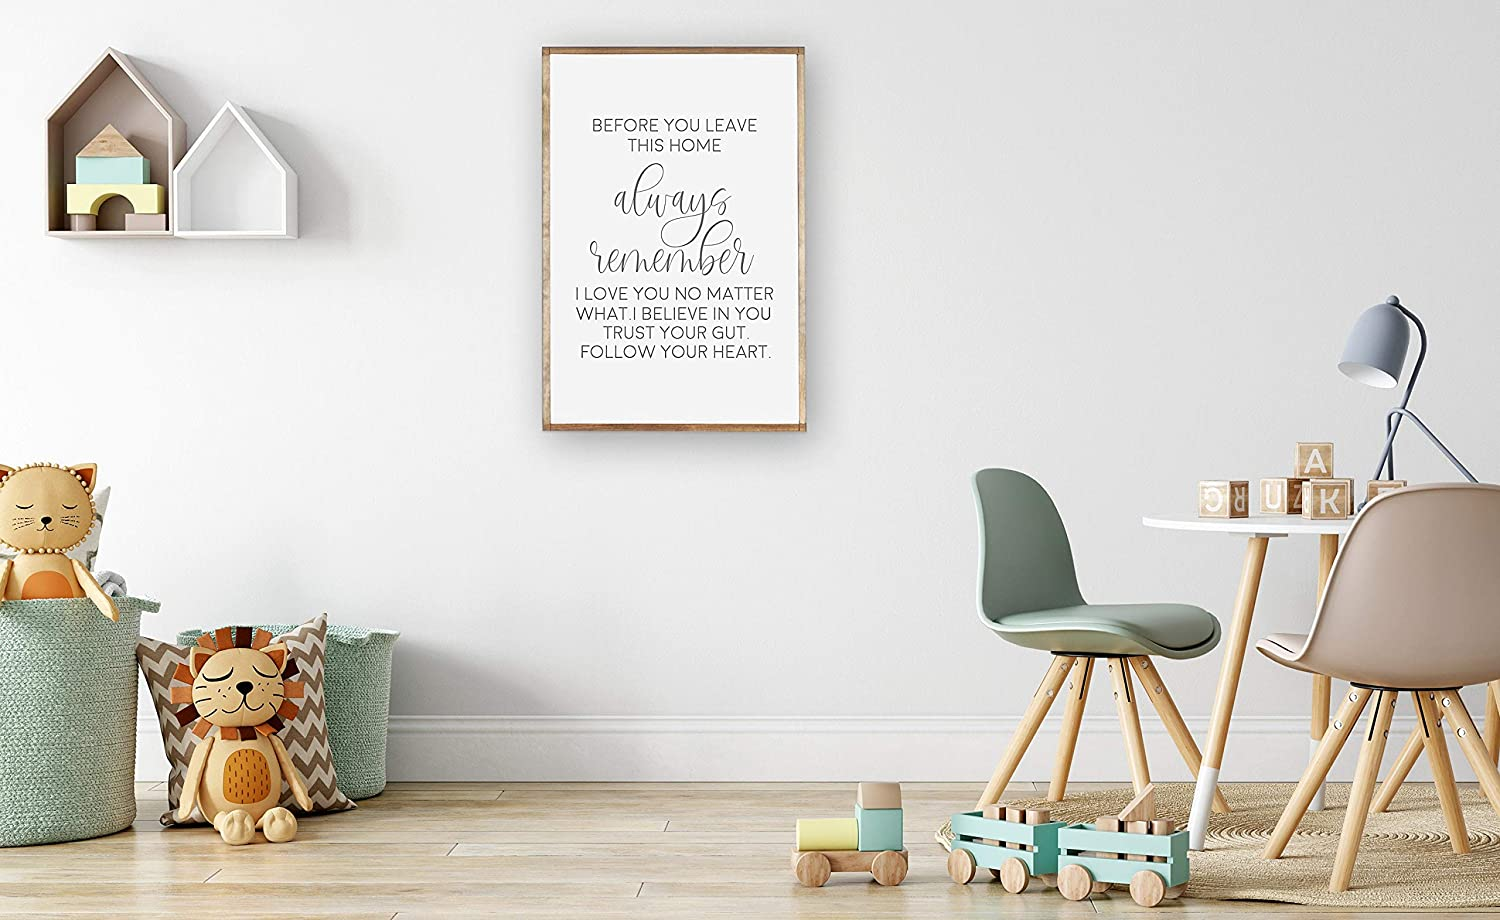 Amazon Com Promini Before You Leave This Home Wood Framed Sign Always Remember I Love You Entry Decor Sign Entryway Farmhouse Decor Sign Inspirational Quote 8x12 Inch Wooden Sign Wall Art Home Decor